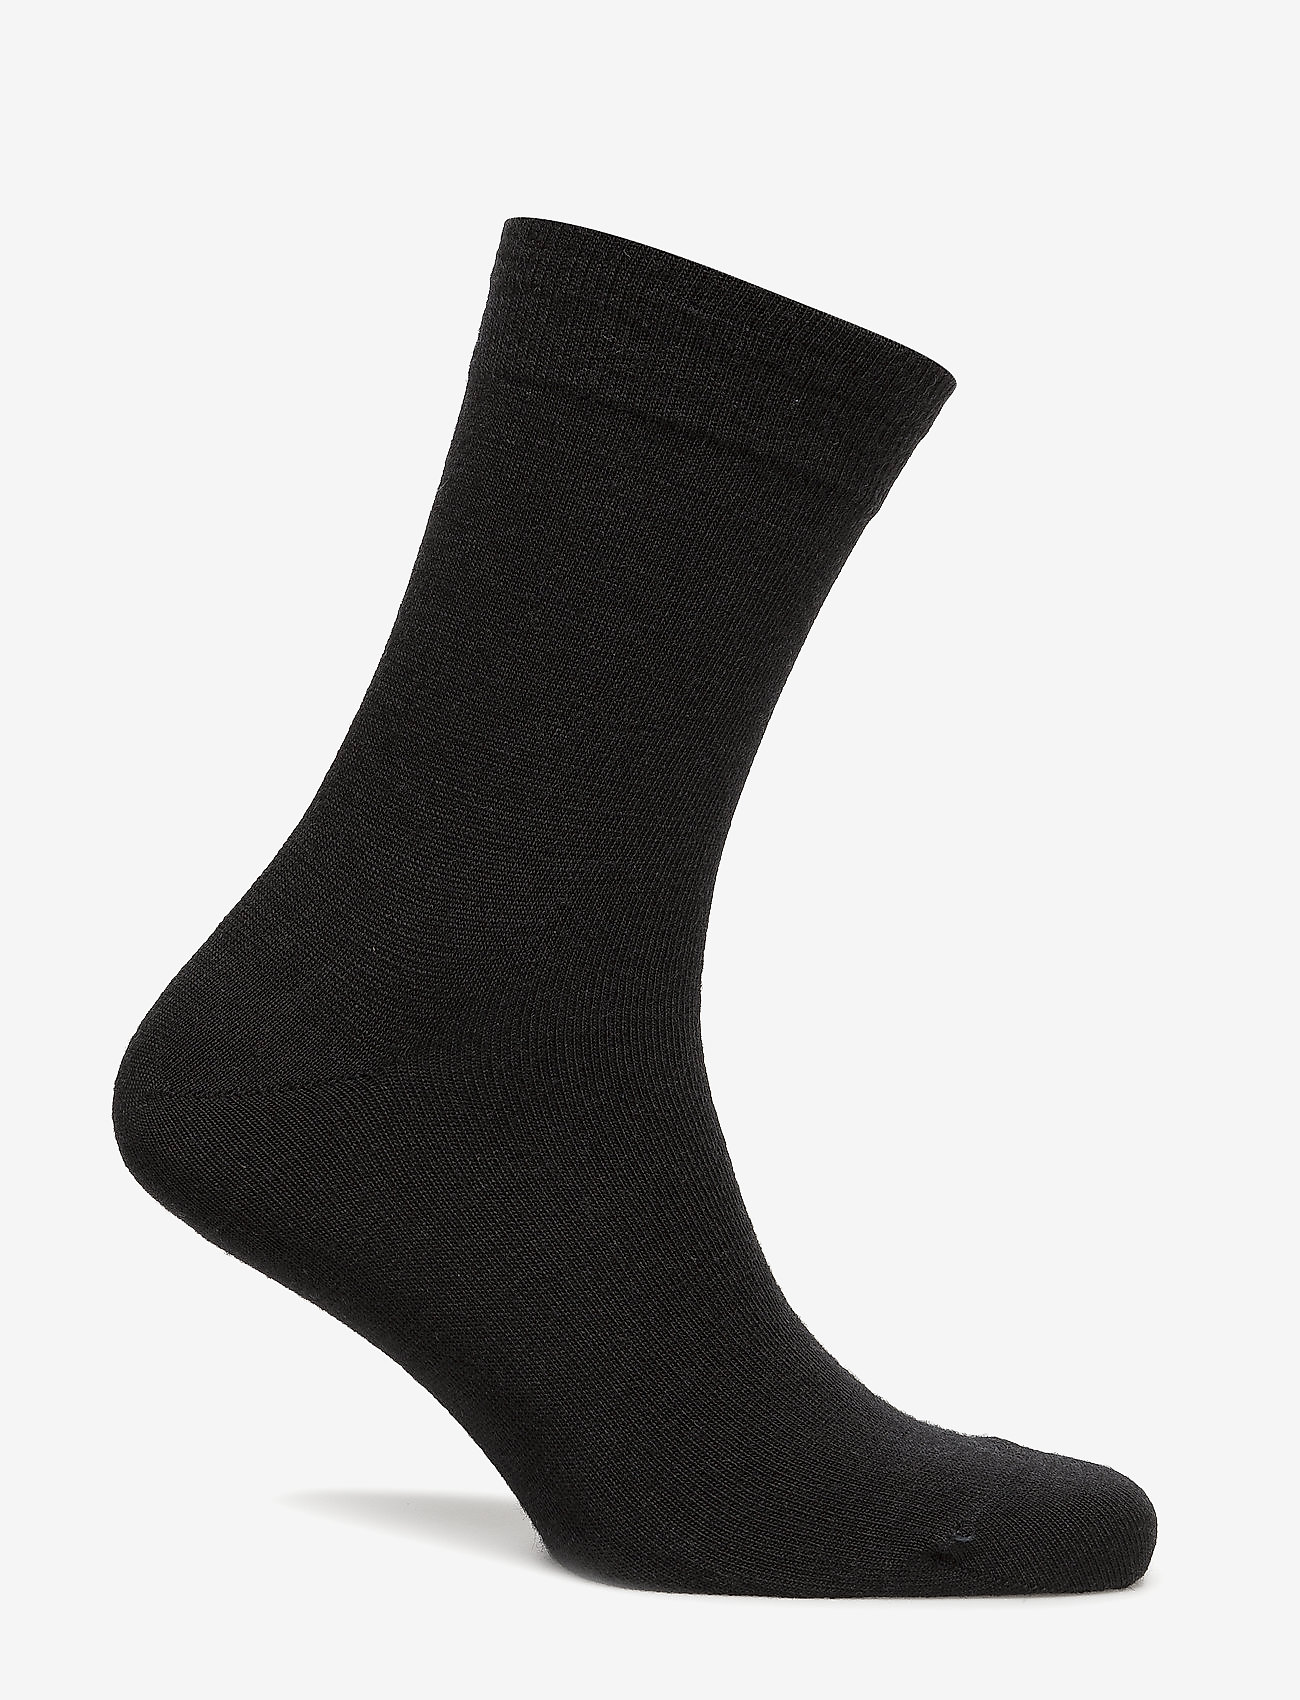 Egtved - Egtved business socks - tavalliset sukat - black - 1